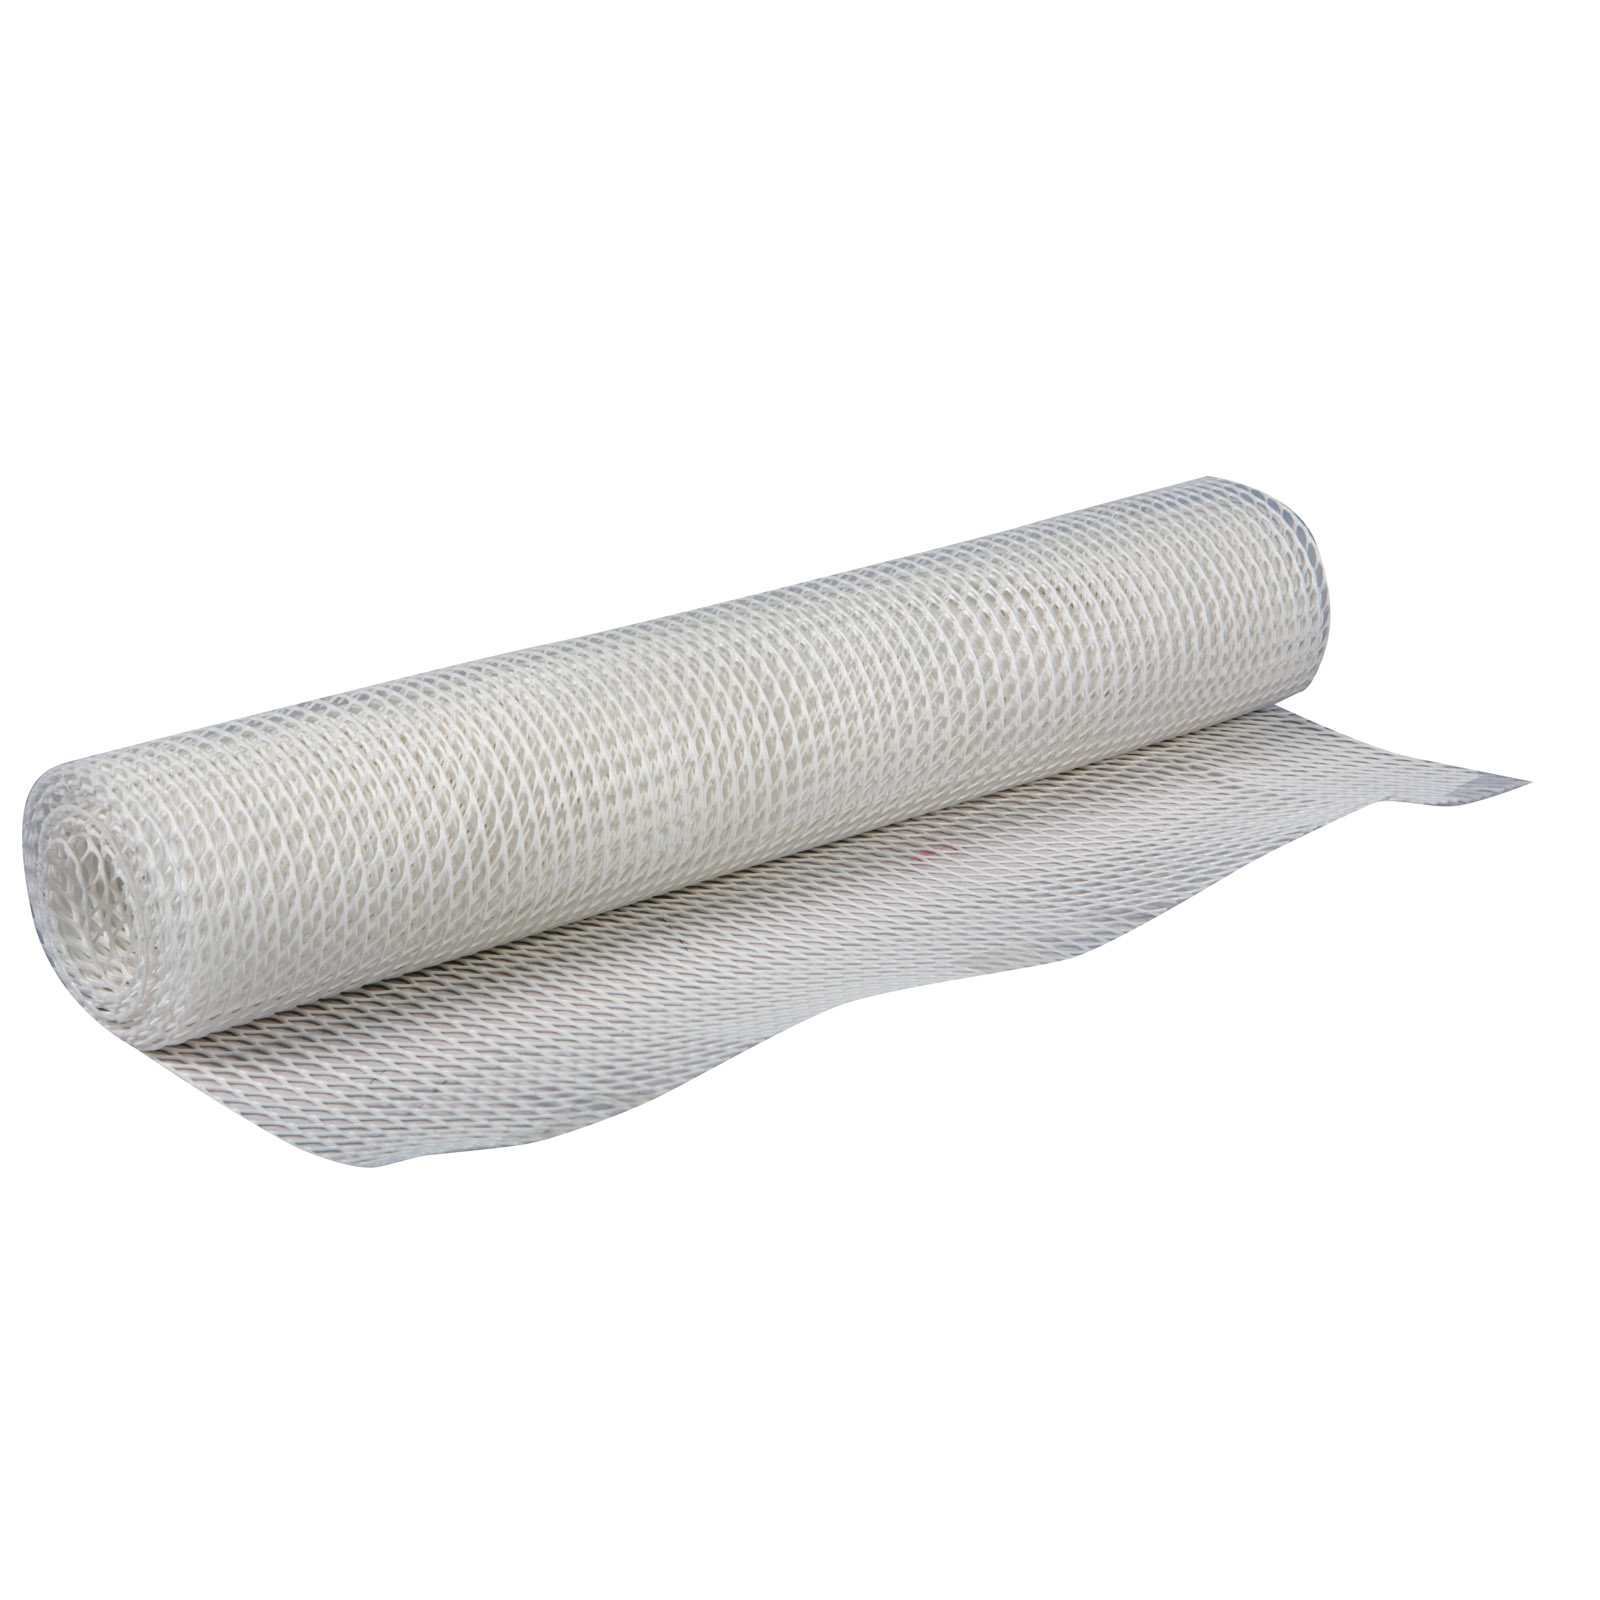 San Jamar UL5104 bar & shelf liner, roll